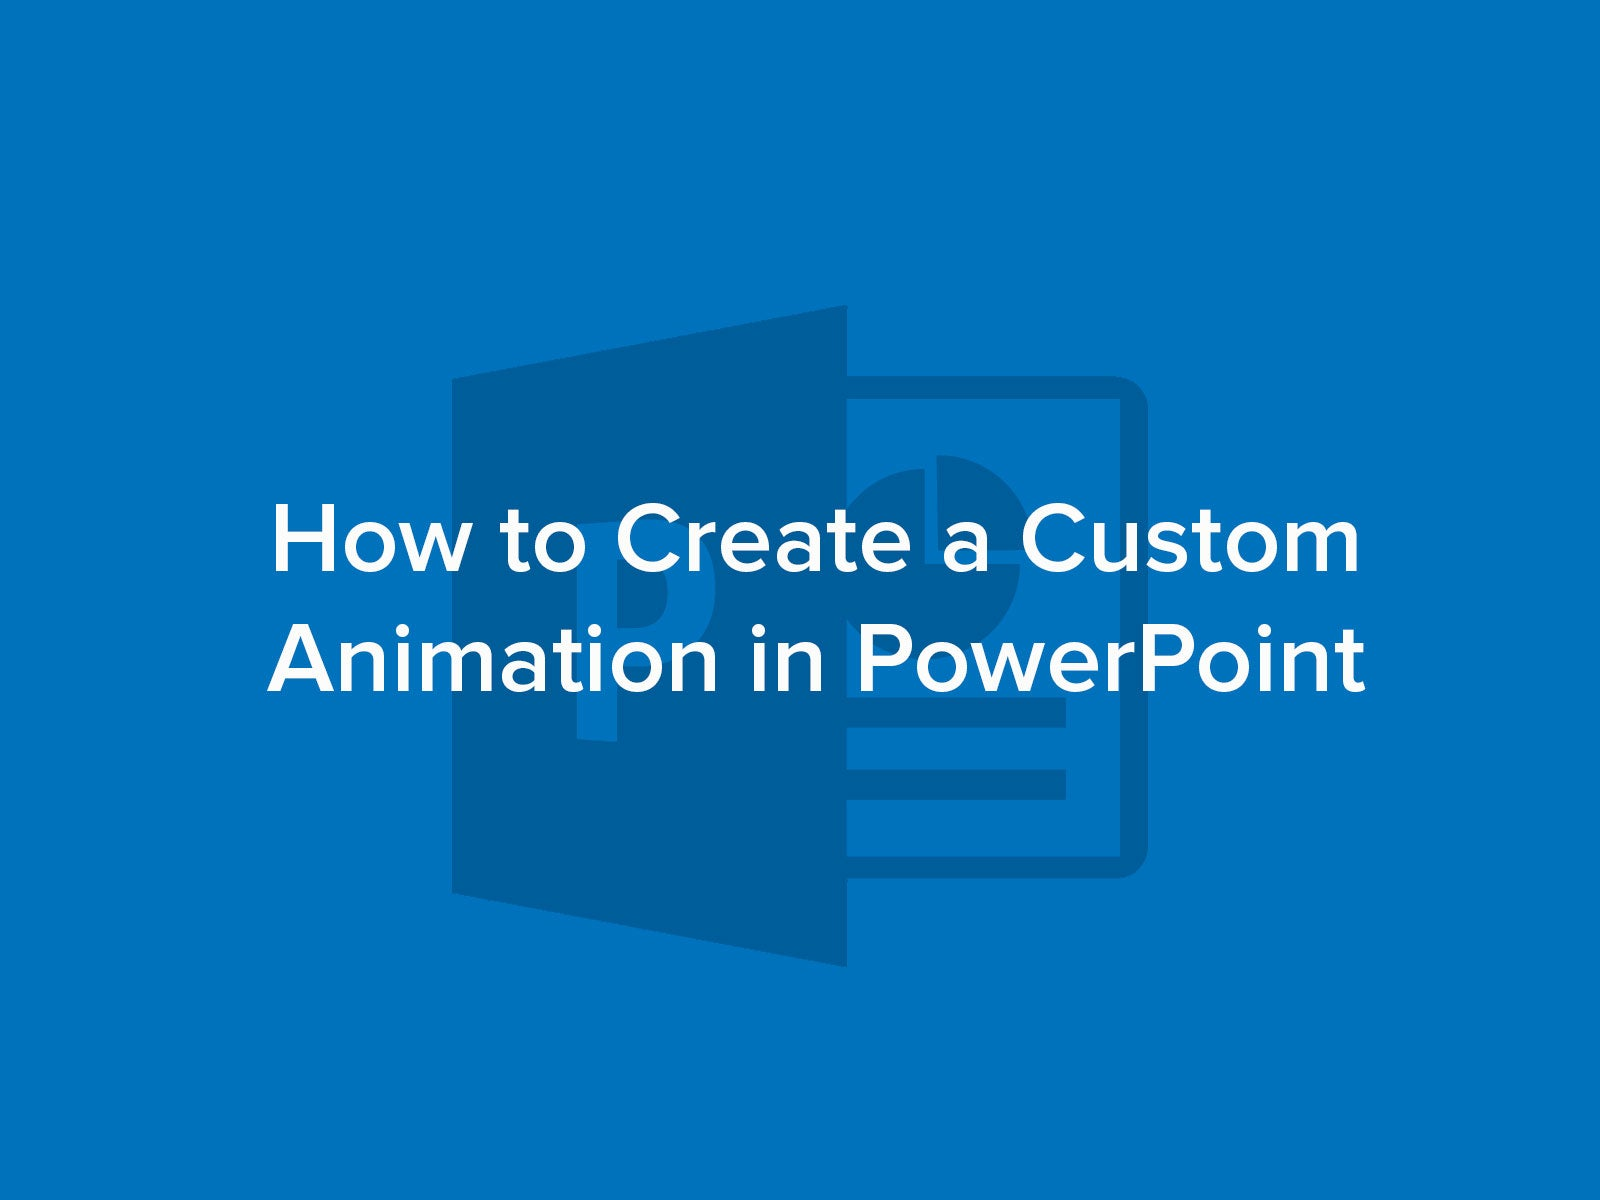 How to Create a Custom Animation in PowerPoint